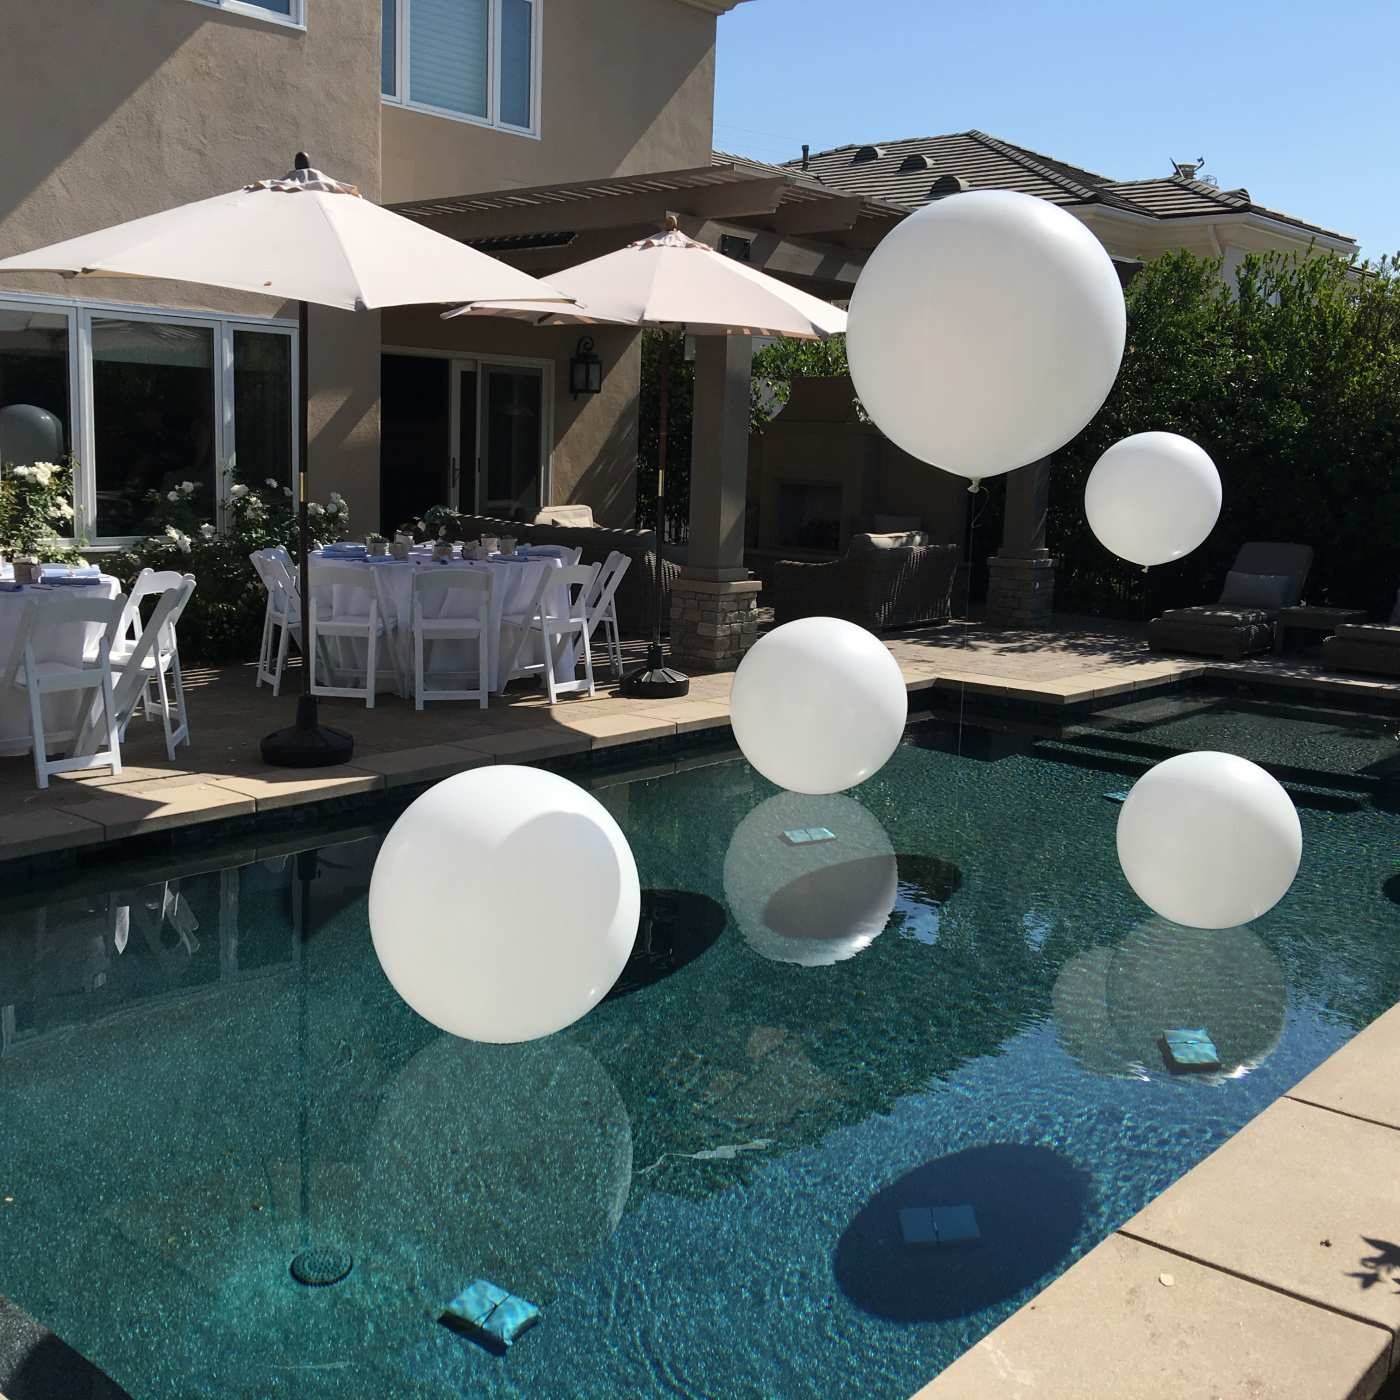 Baby shower 3 foot balloons floating over pool